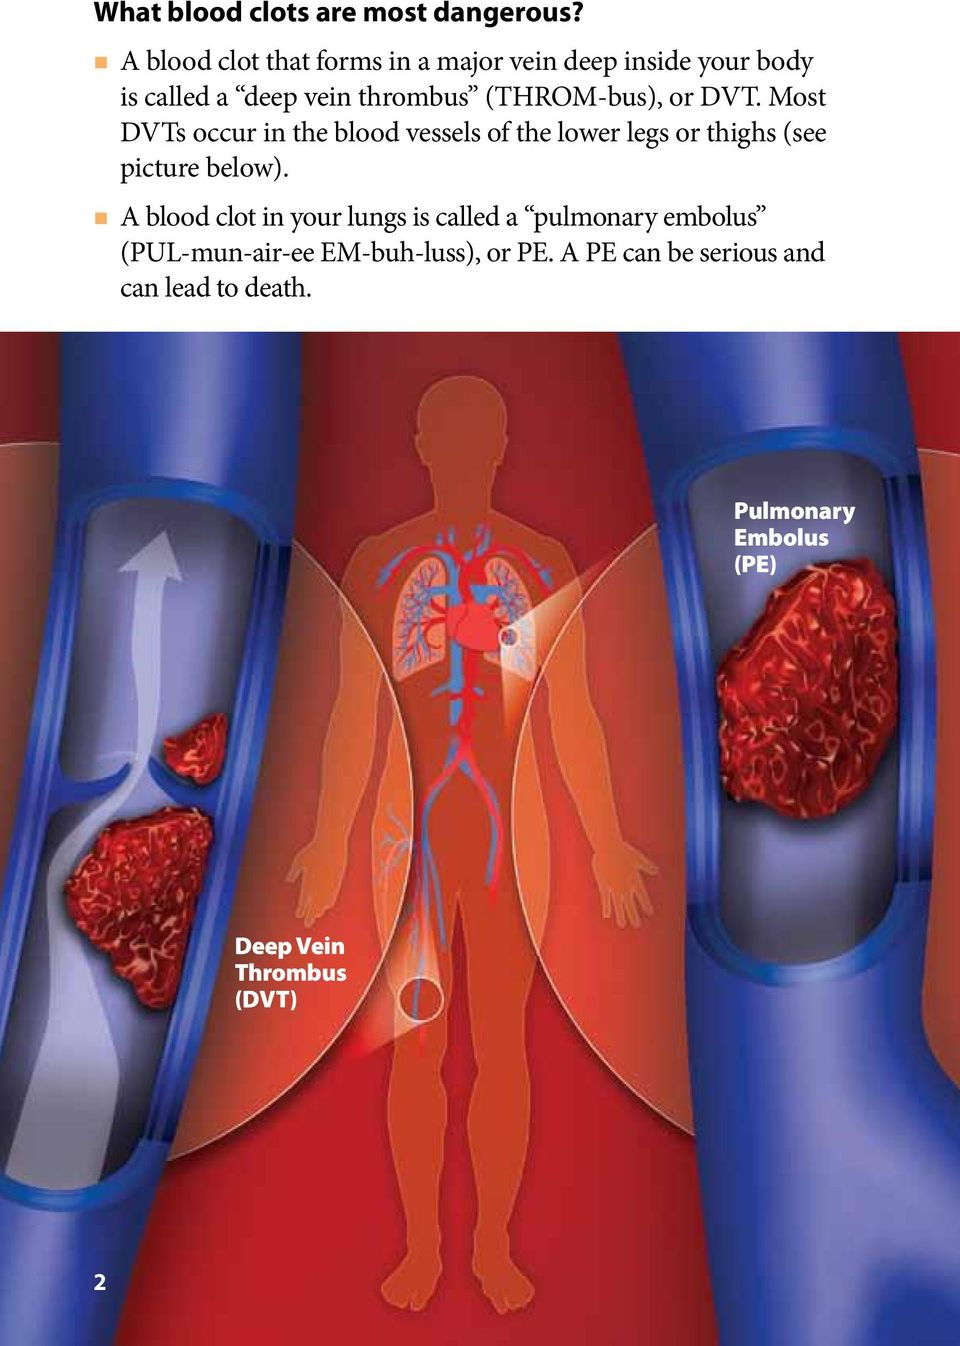 or DVT. Most DVTs occur in the blood vessels of the lower legs or thighs (see picture below).